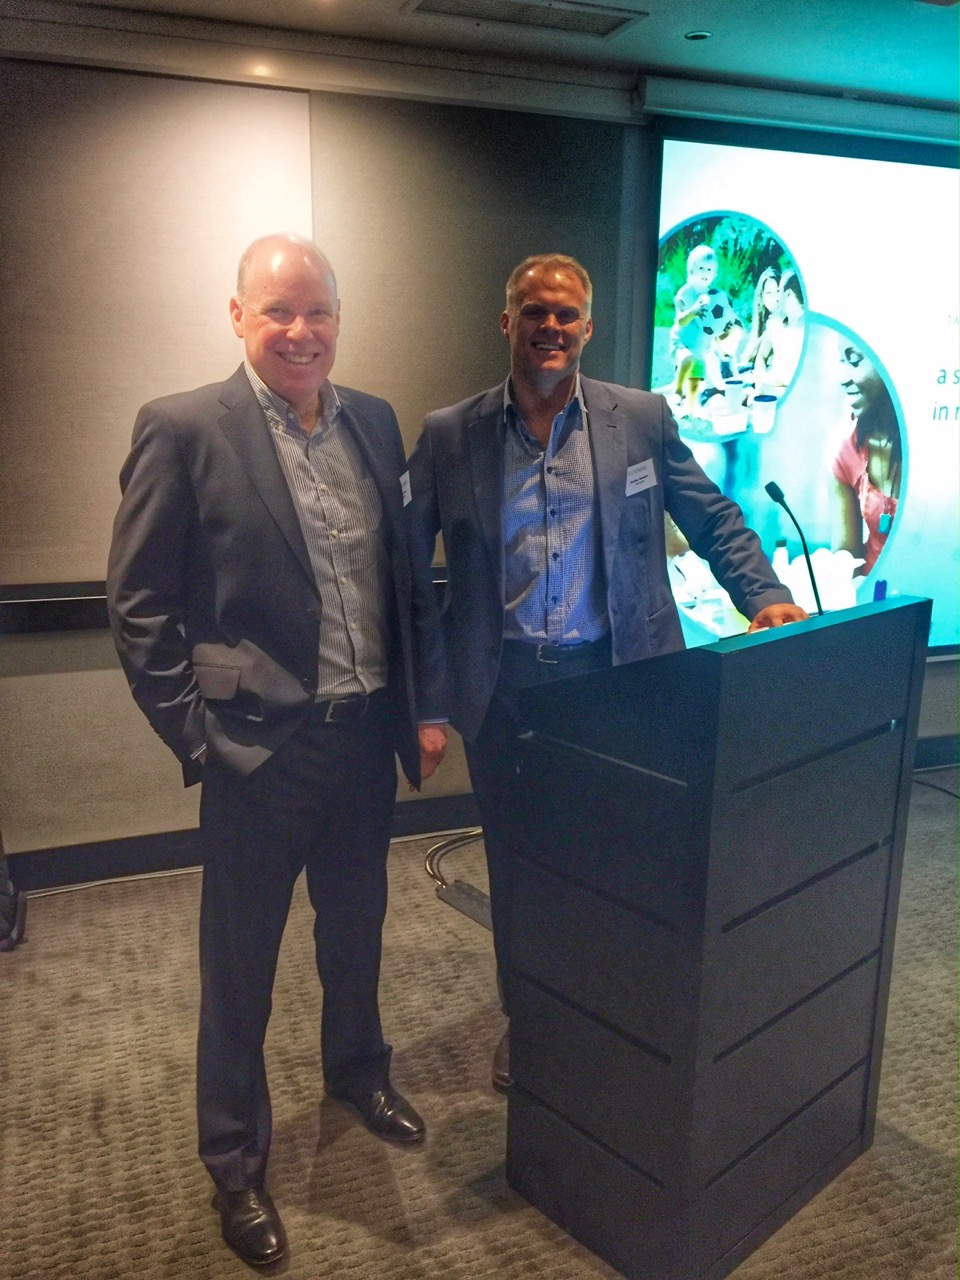 Astrapak CEO Robin Moore (left) and Managing Director Manley Diedloff at Astrapak Limited's Annual Results Presentation to shareholders and analysts in Johannesburg on Wednesday 20 April.